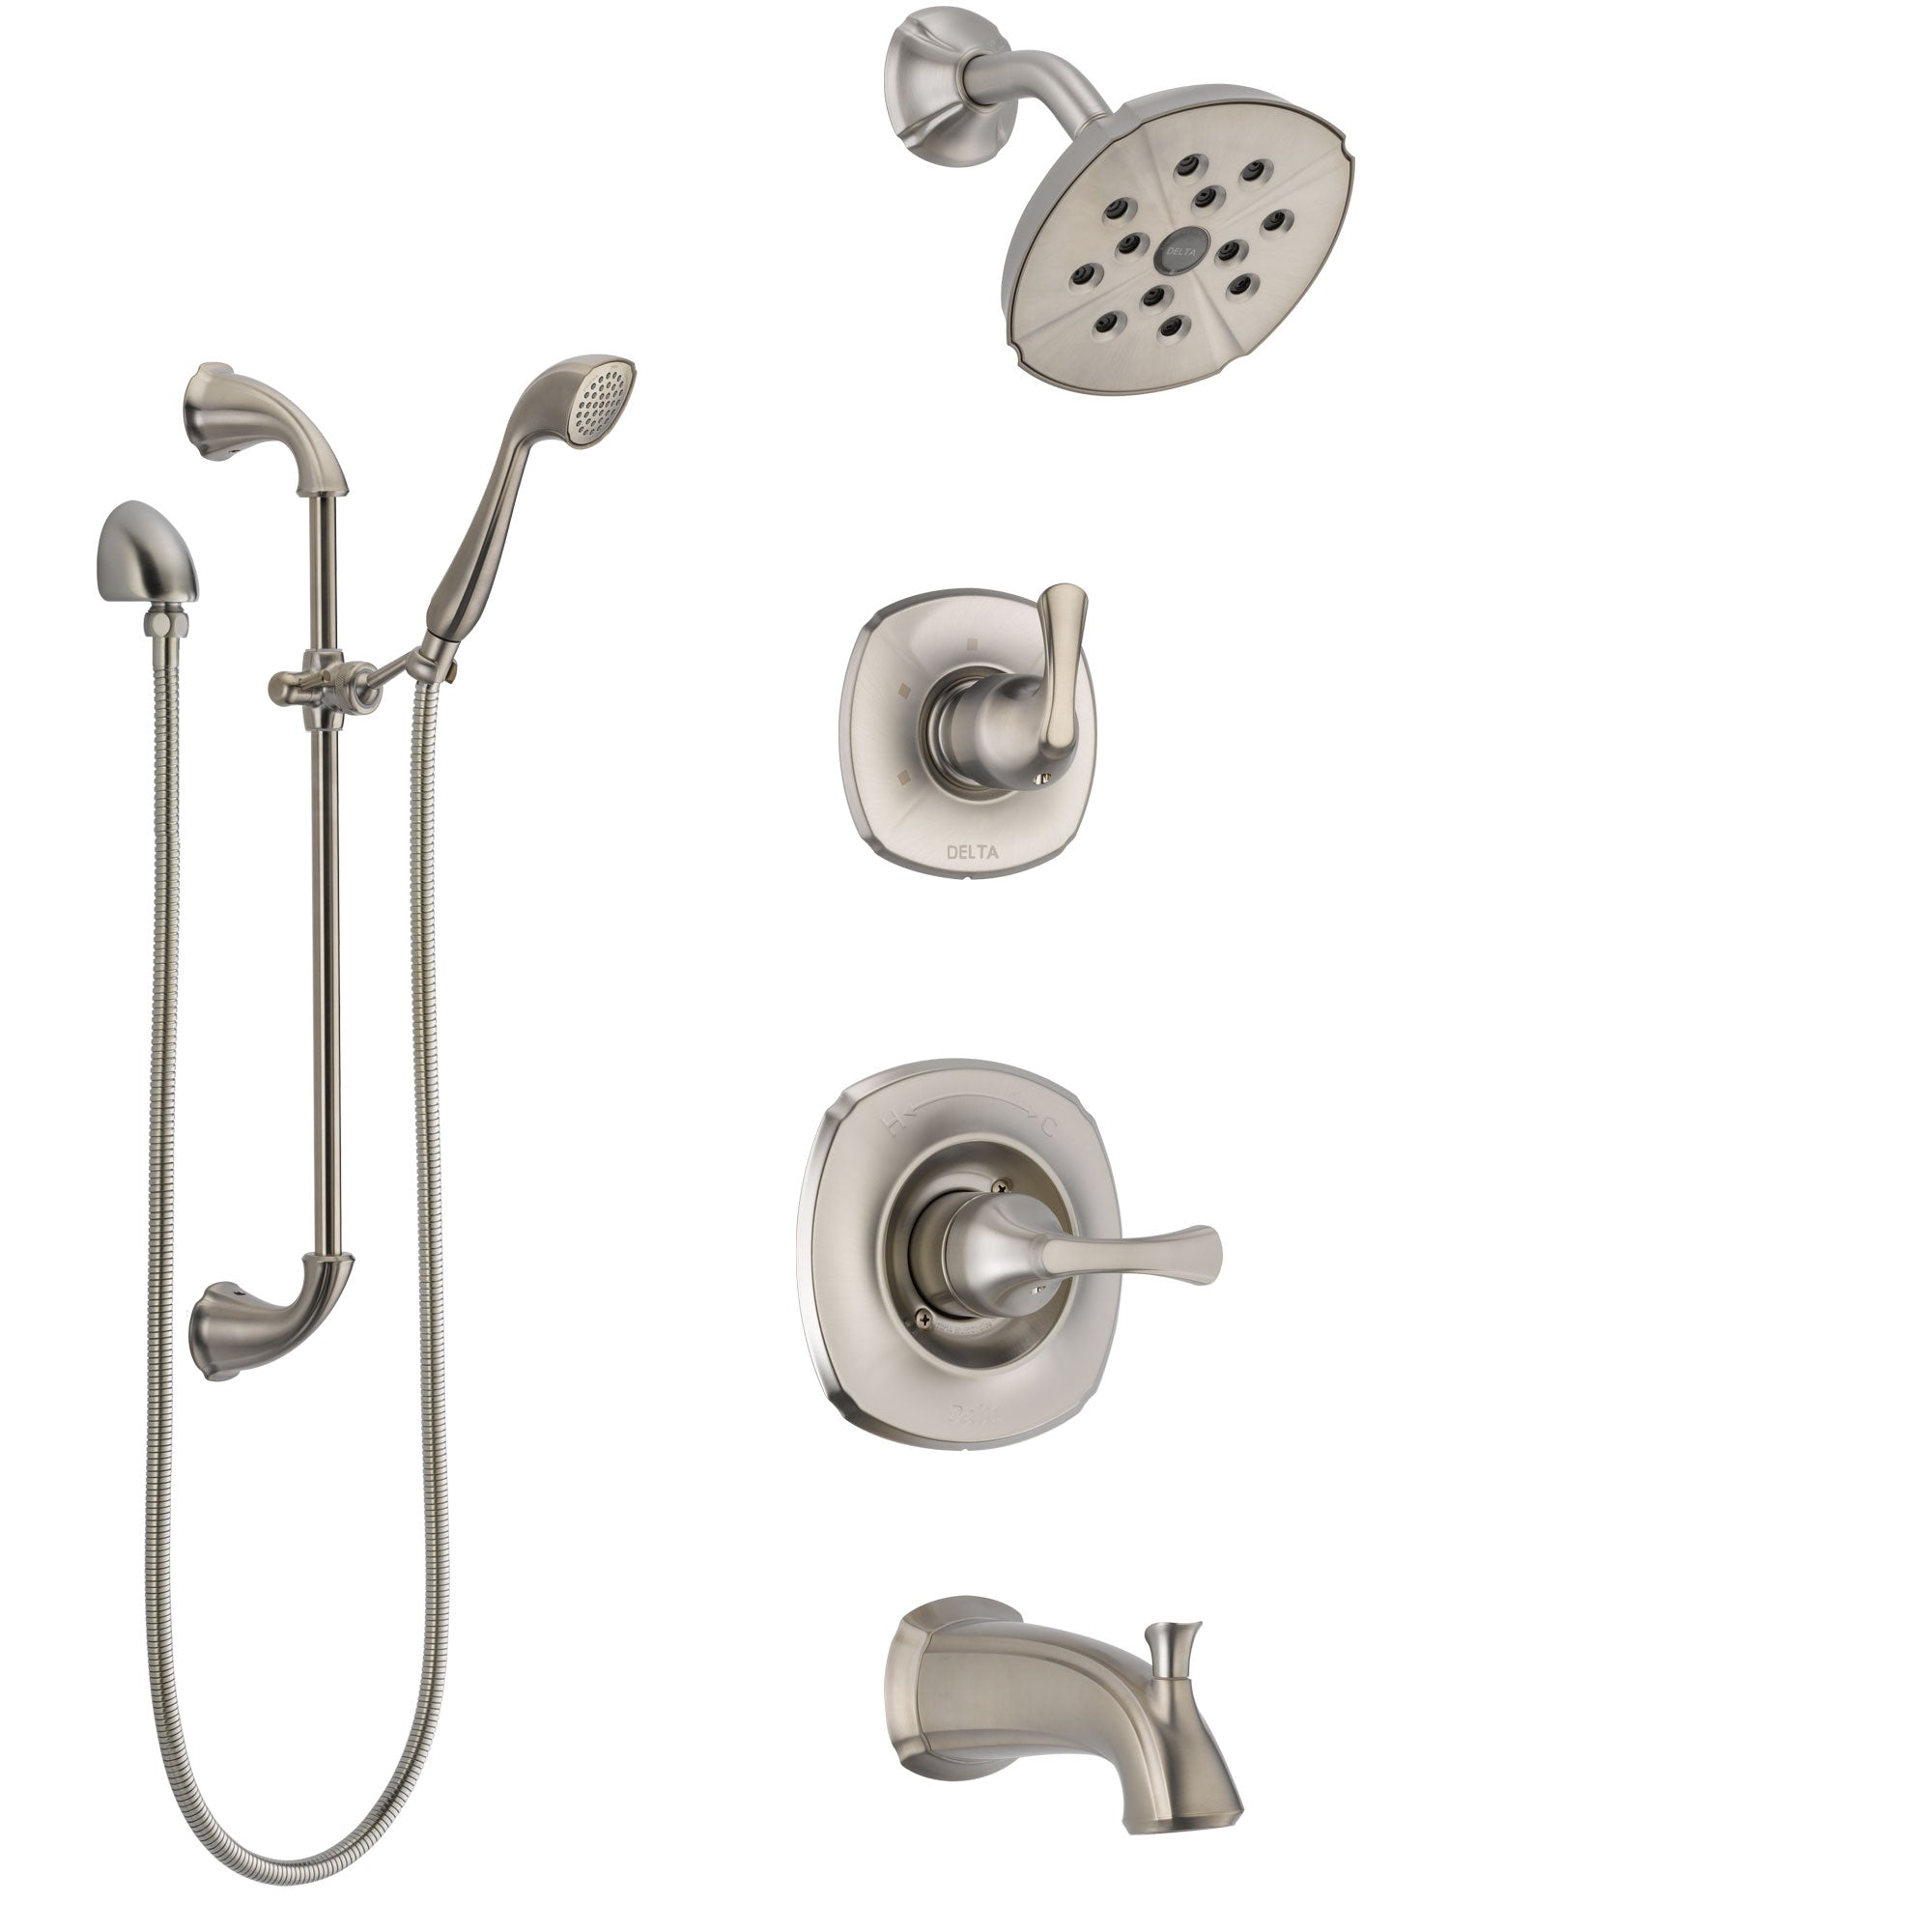 Delta Addison Stainless Steel Finish Tub and Shower System with Control Handle, Diverter, Showerhead, and Hand Shower with Slidebar SS14492SS5